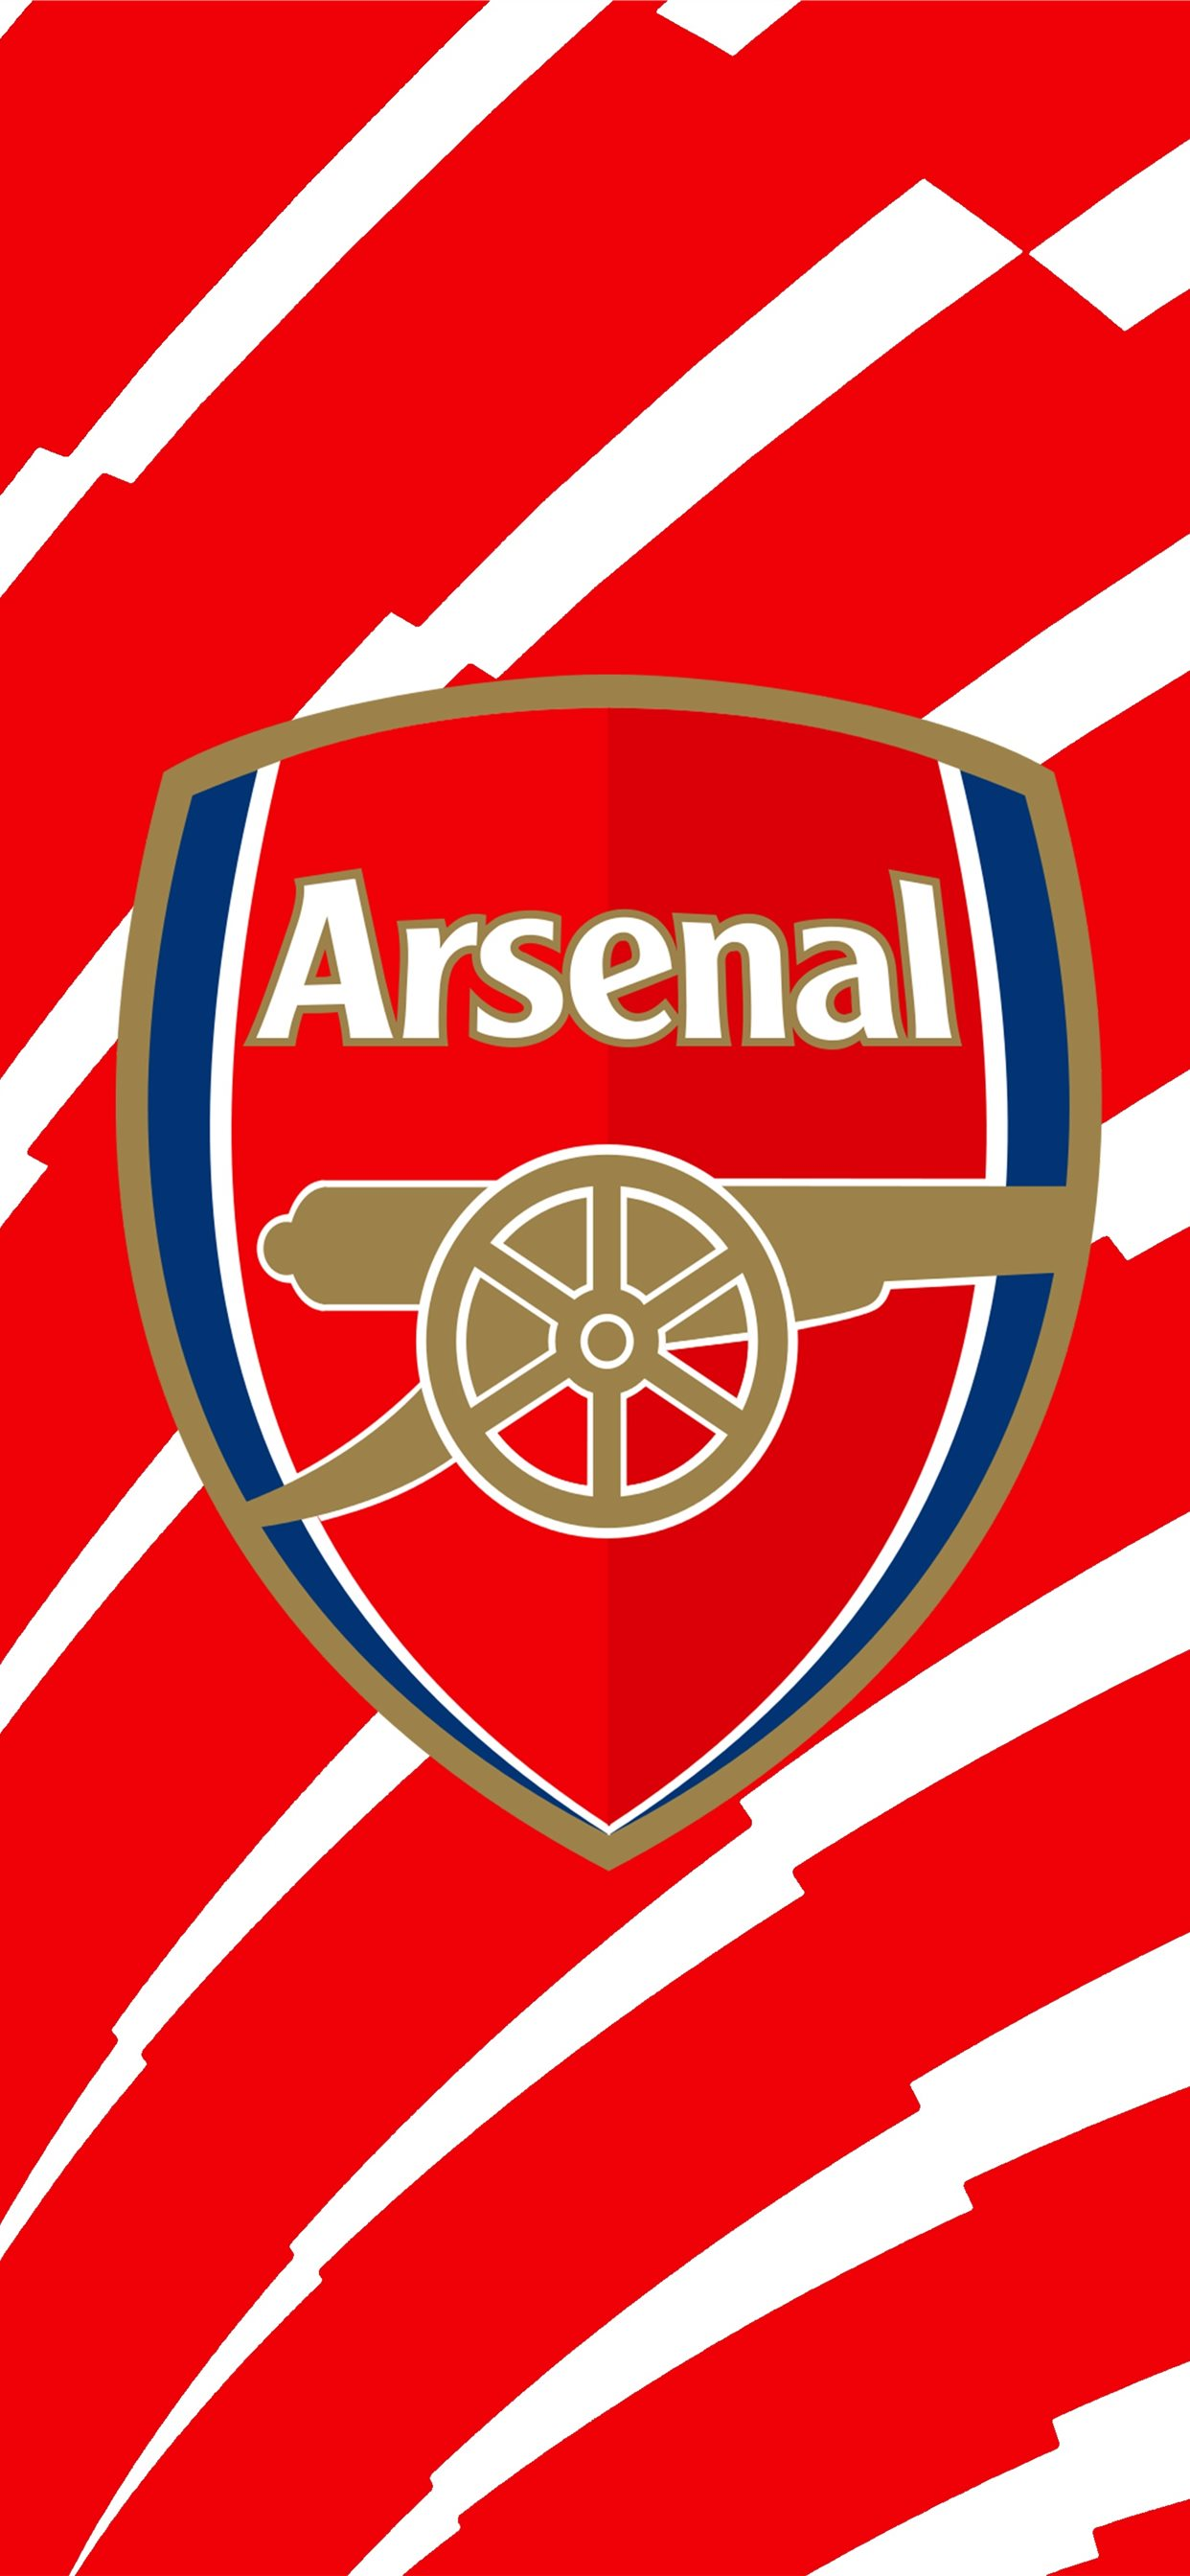 arsenal hd backgrounds iphone 11